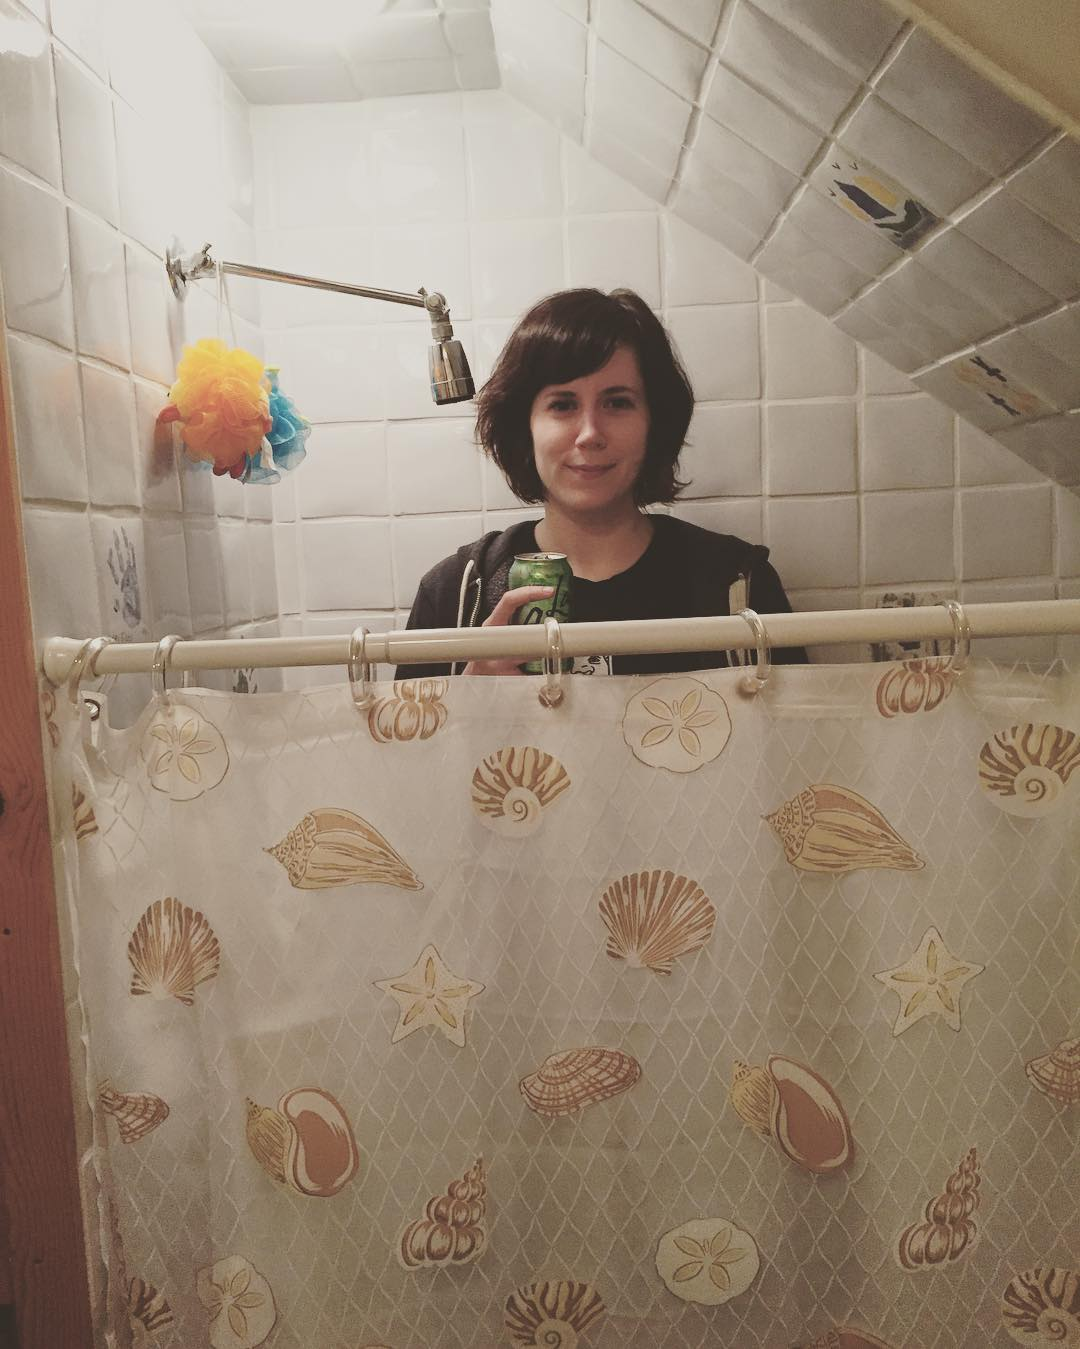 seen here demonstrating that this shower is nonsense - promotional considerations by la croix lime - jk no it's not